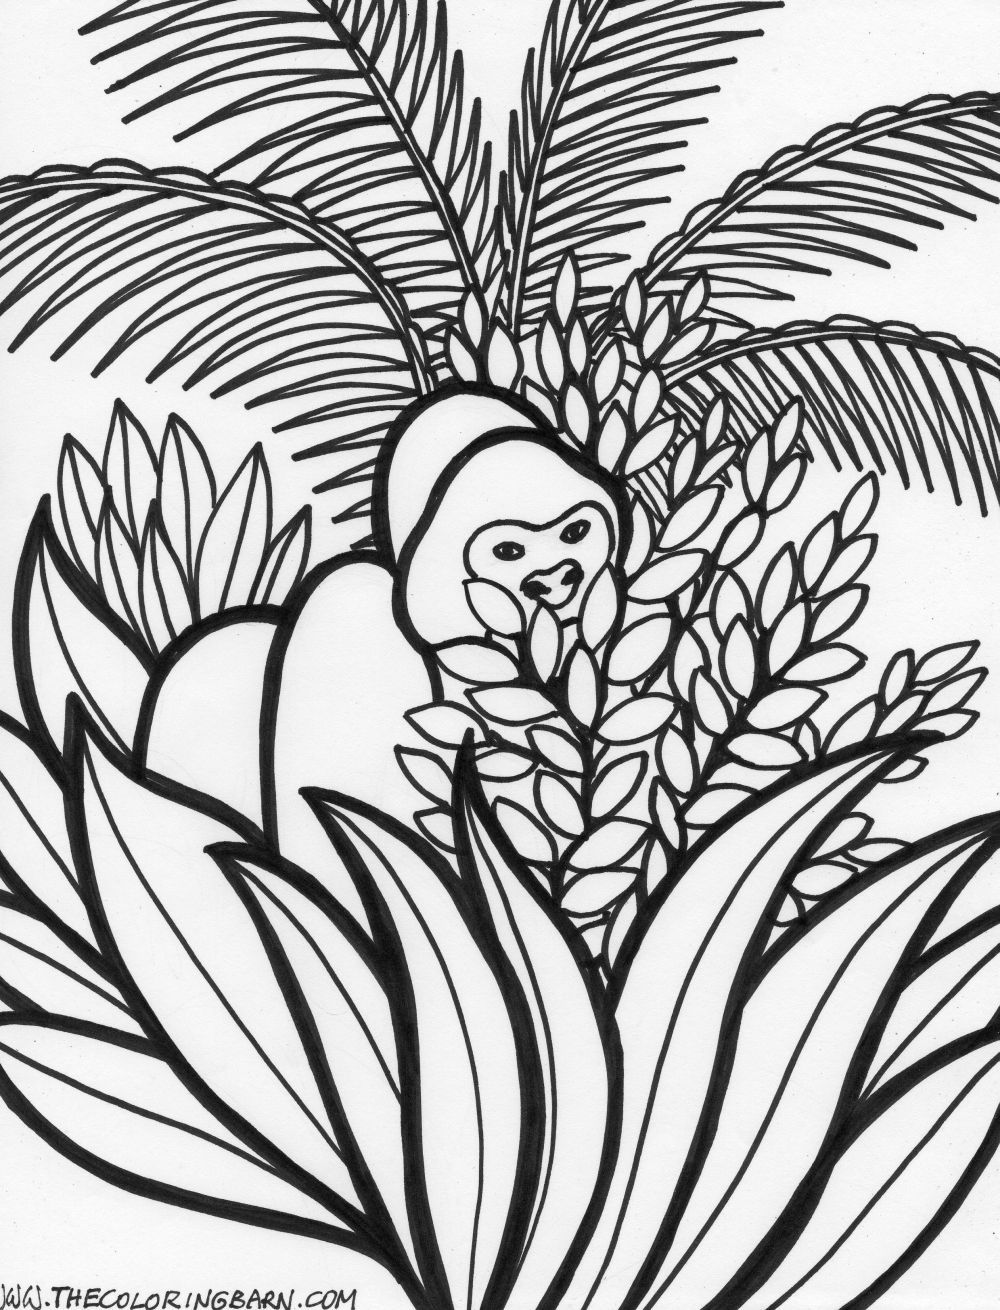 Coloring pages rainforest - Coloring Pages Of Jungle Animals Rain Forest The Coloring Barn Maybe Without